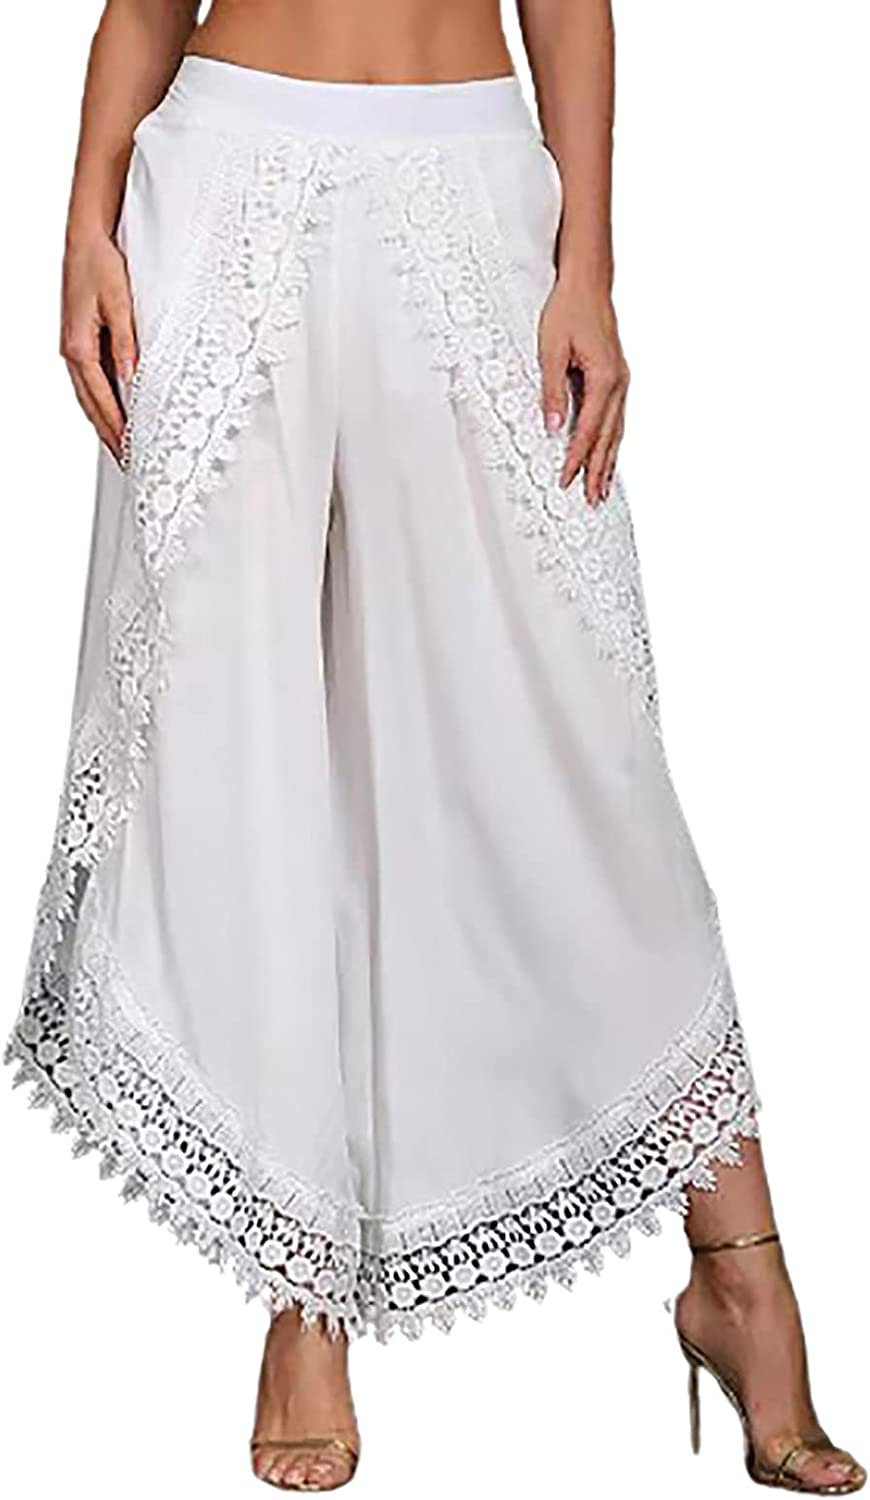 Capris for Women Lace High Waist Swimsuit Cover Up Pants Cropped Wide Leg Palazzo Lounge Pants Beach Pants